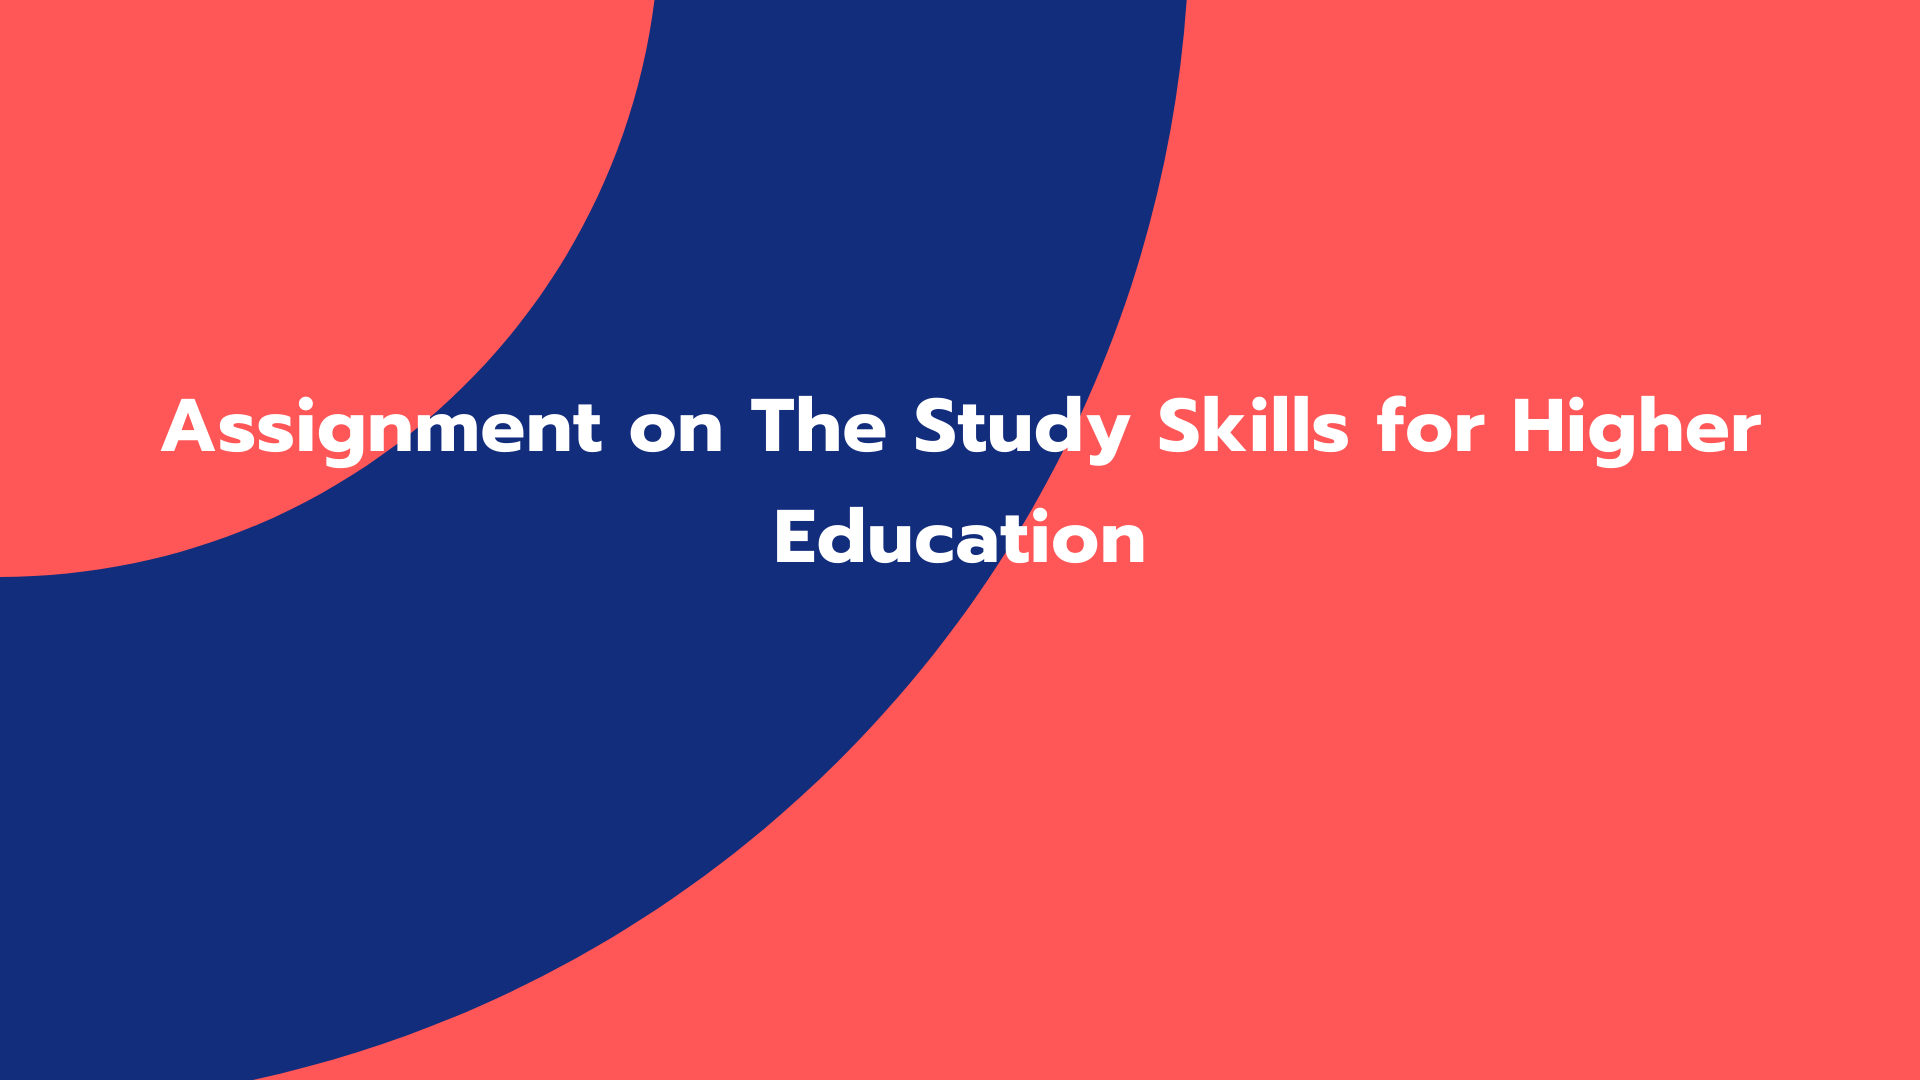 Assignment on The Study Skills for Higher Education